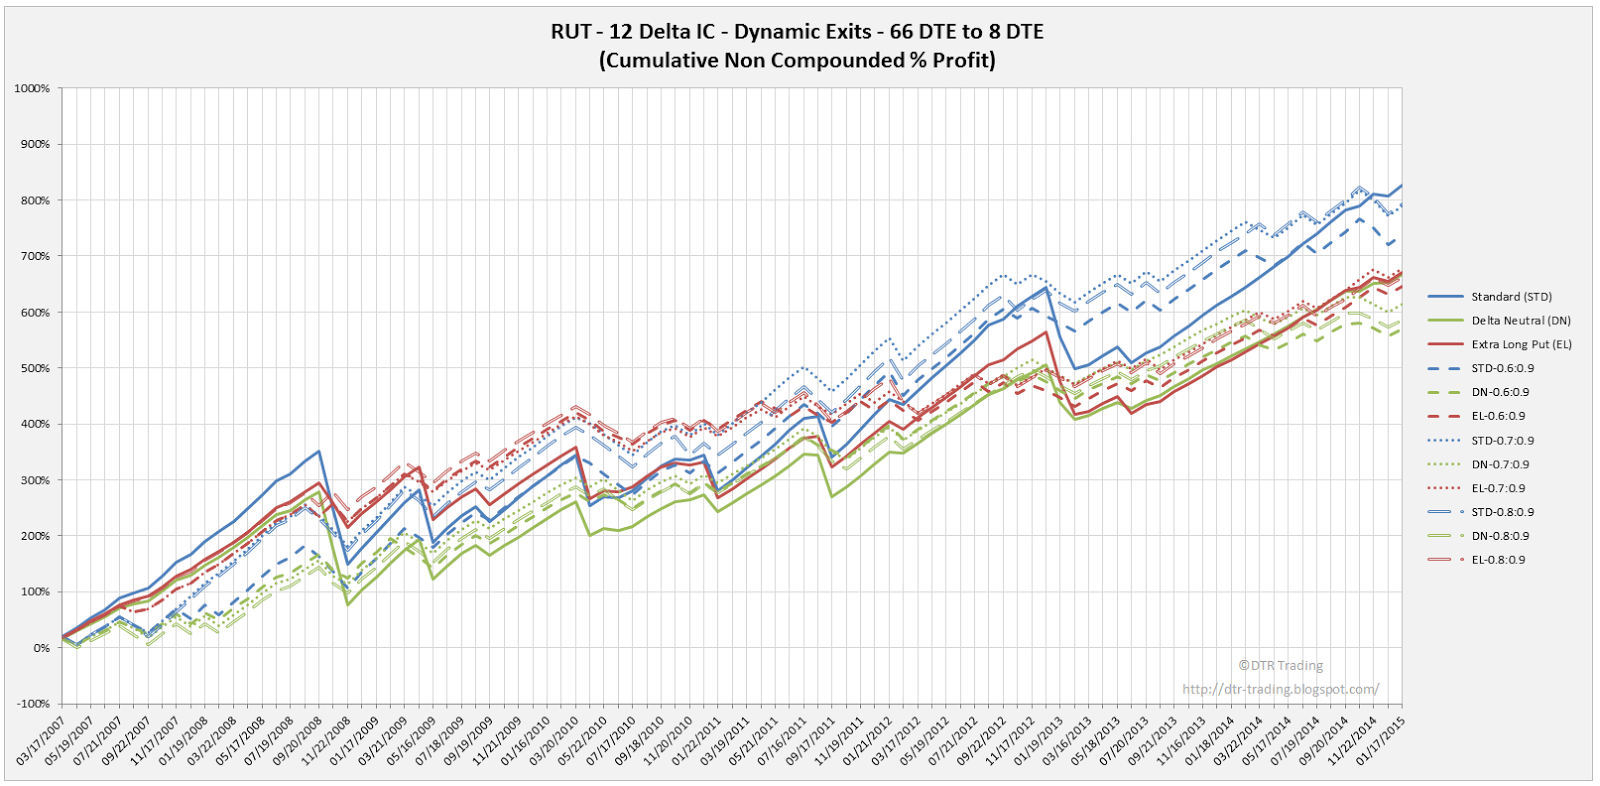 Iron Condor Dynamic Exit Equity Curves RUT 66 DTE 12 Delta Risk:Reward Versions